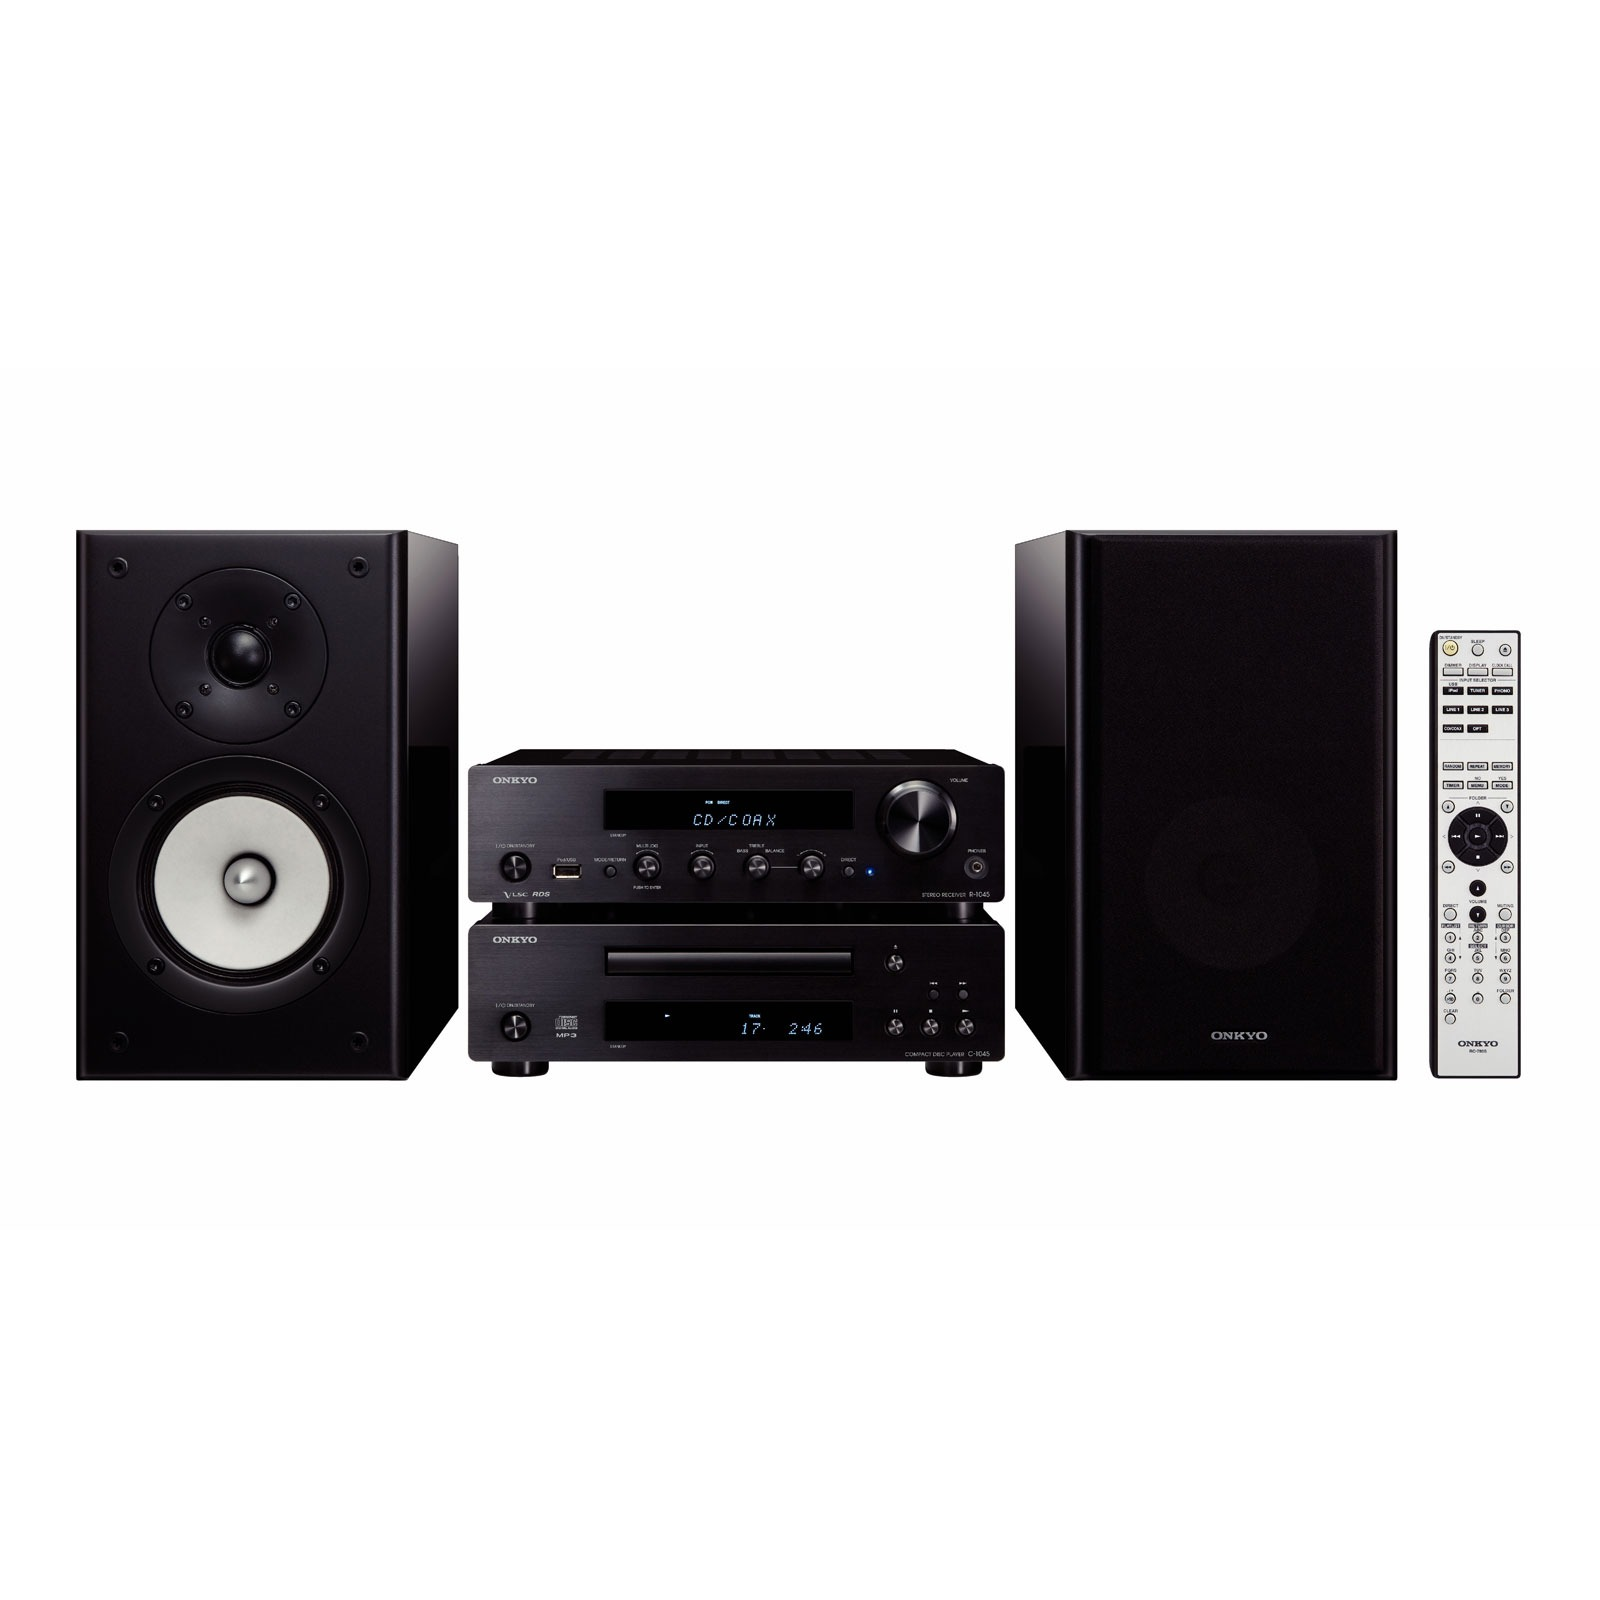 onkyo cs 1045 noir ensemble hifi onkyo sur. Black Bedroom Furniture Sets. Home Design Ideas